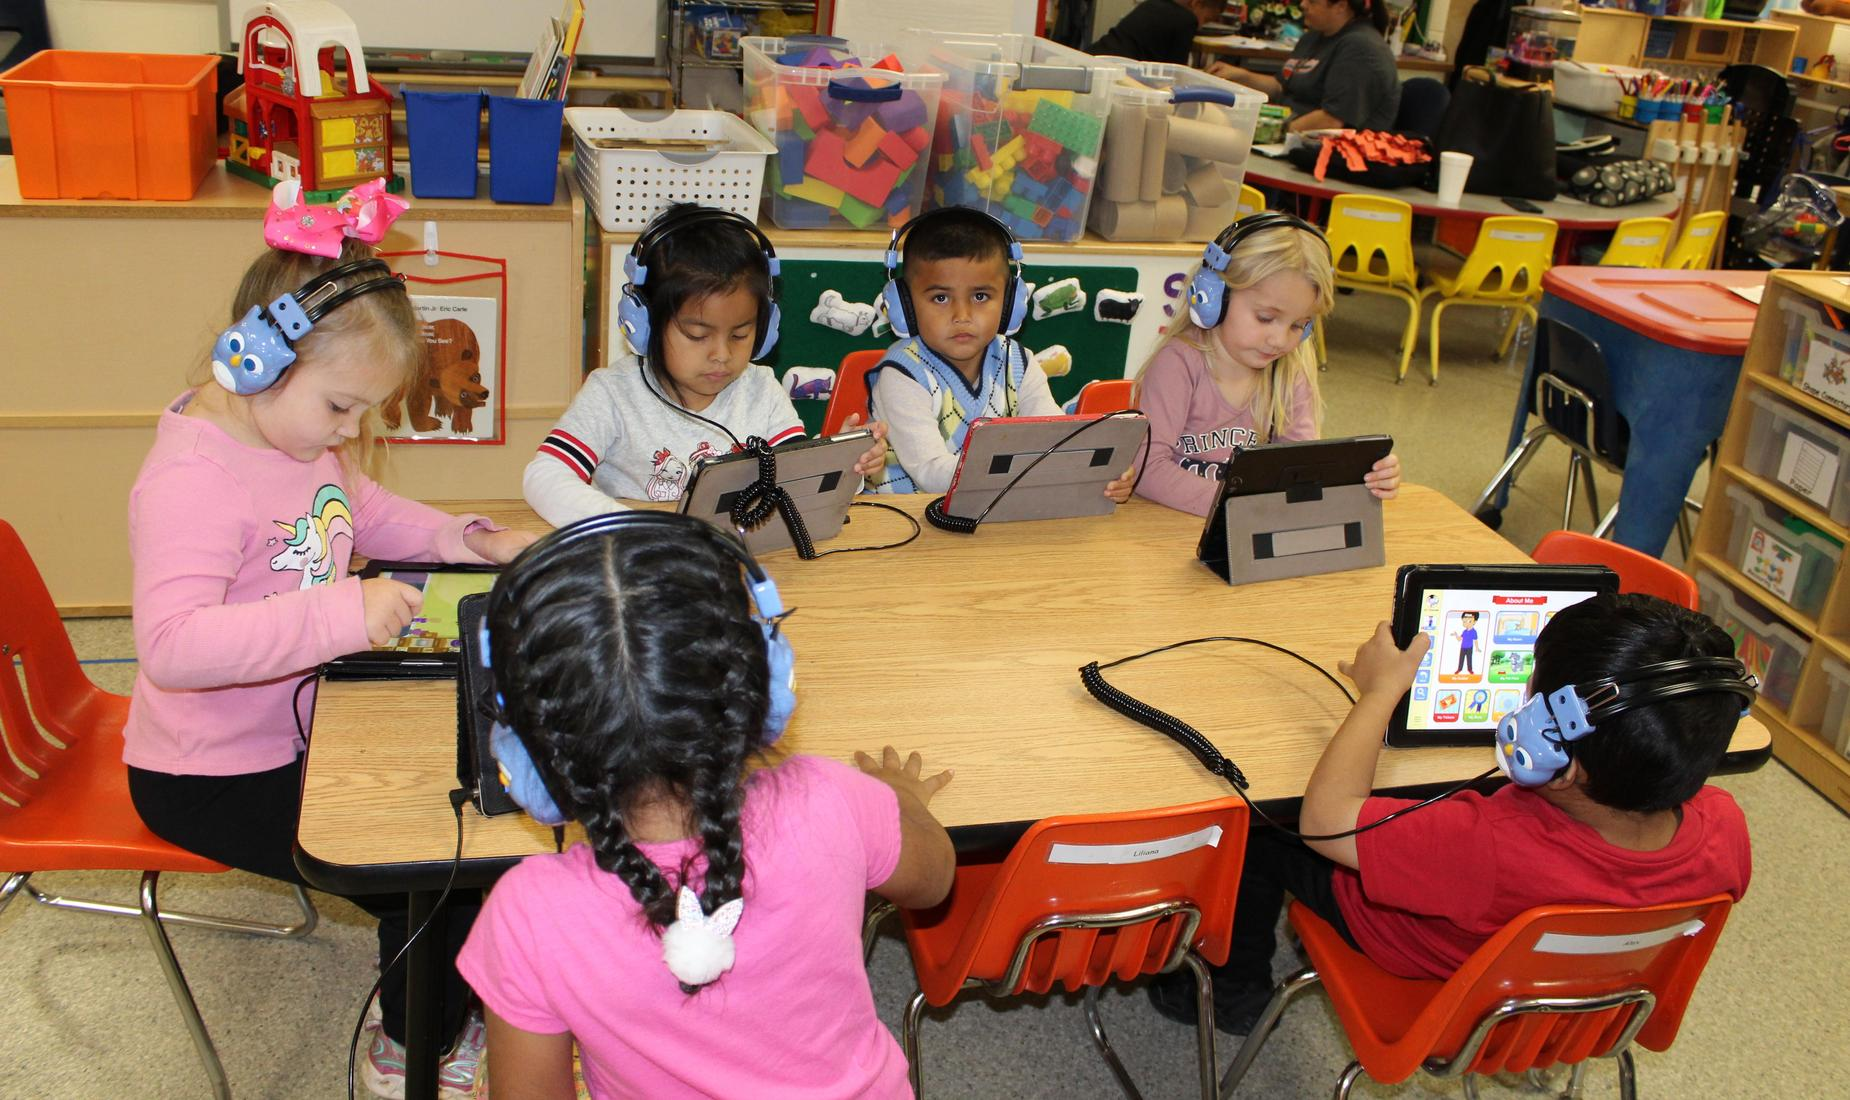 PreK students working on ipads